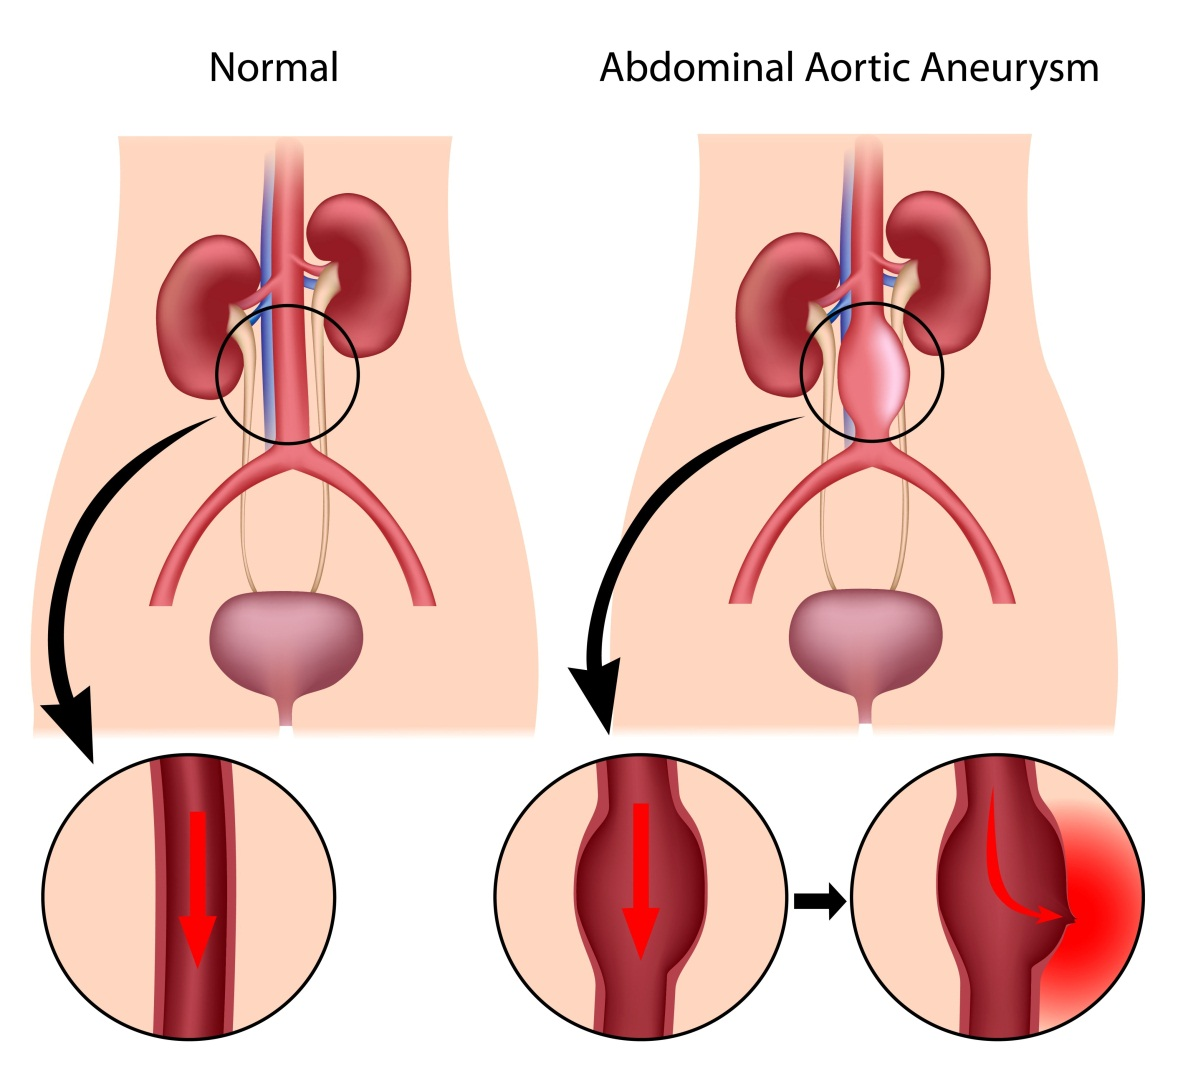 What is ABDOMINAL AORTIC ANEURYSM?